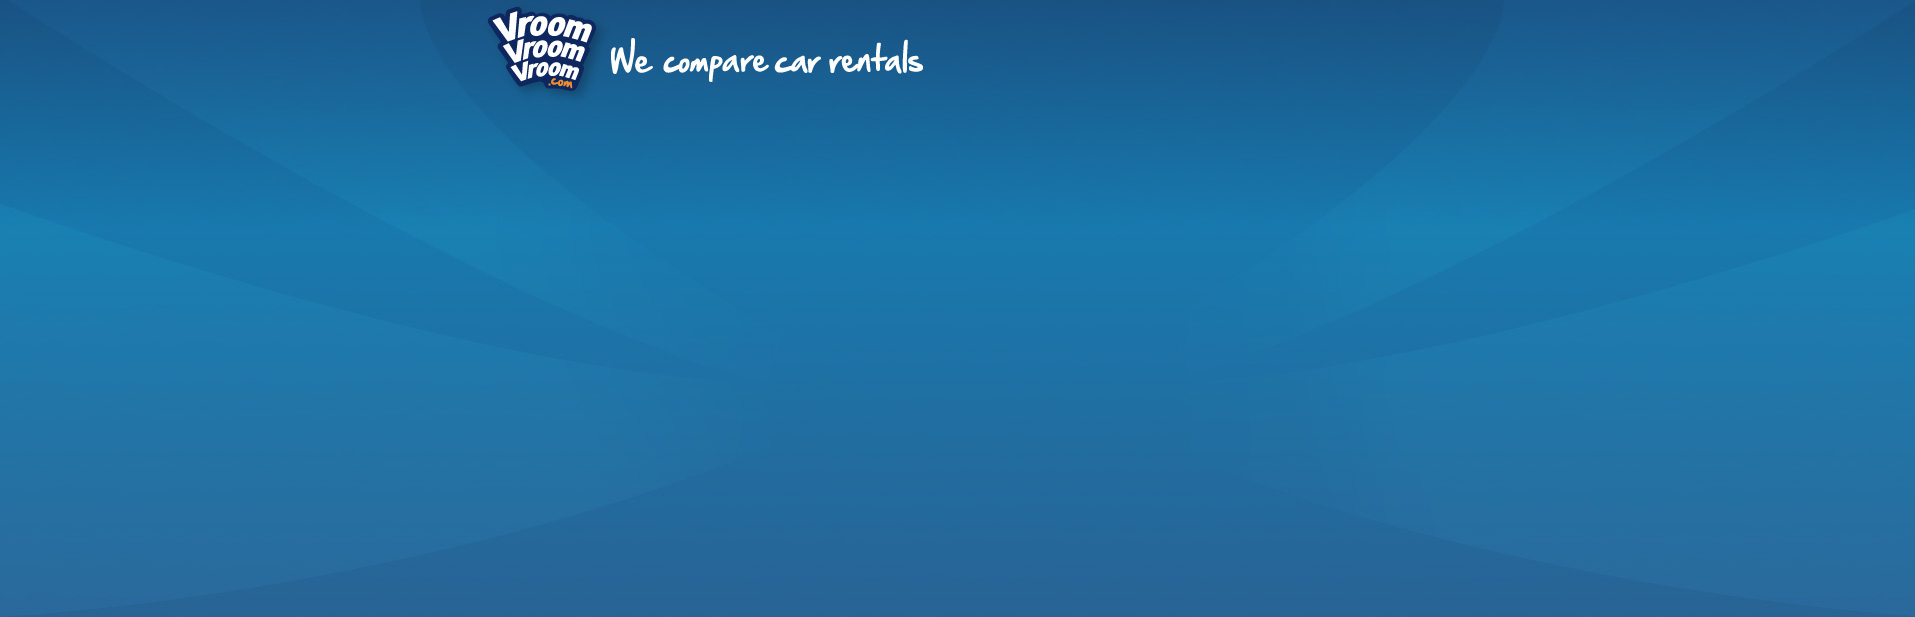 VroomVroomVroom - We compare car rental in the United States